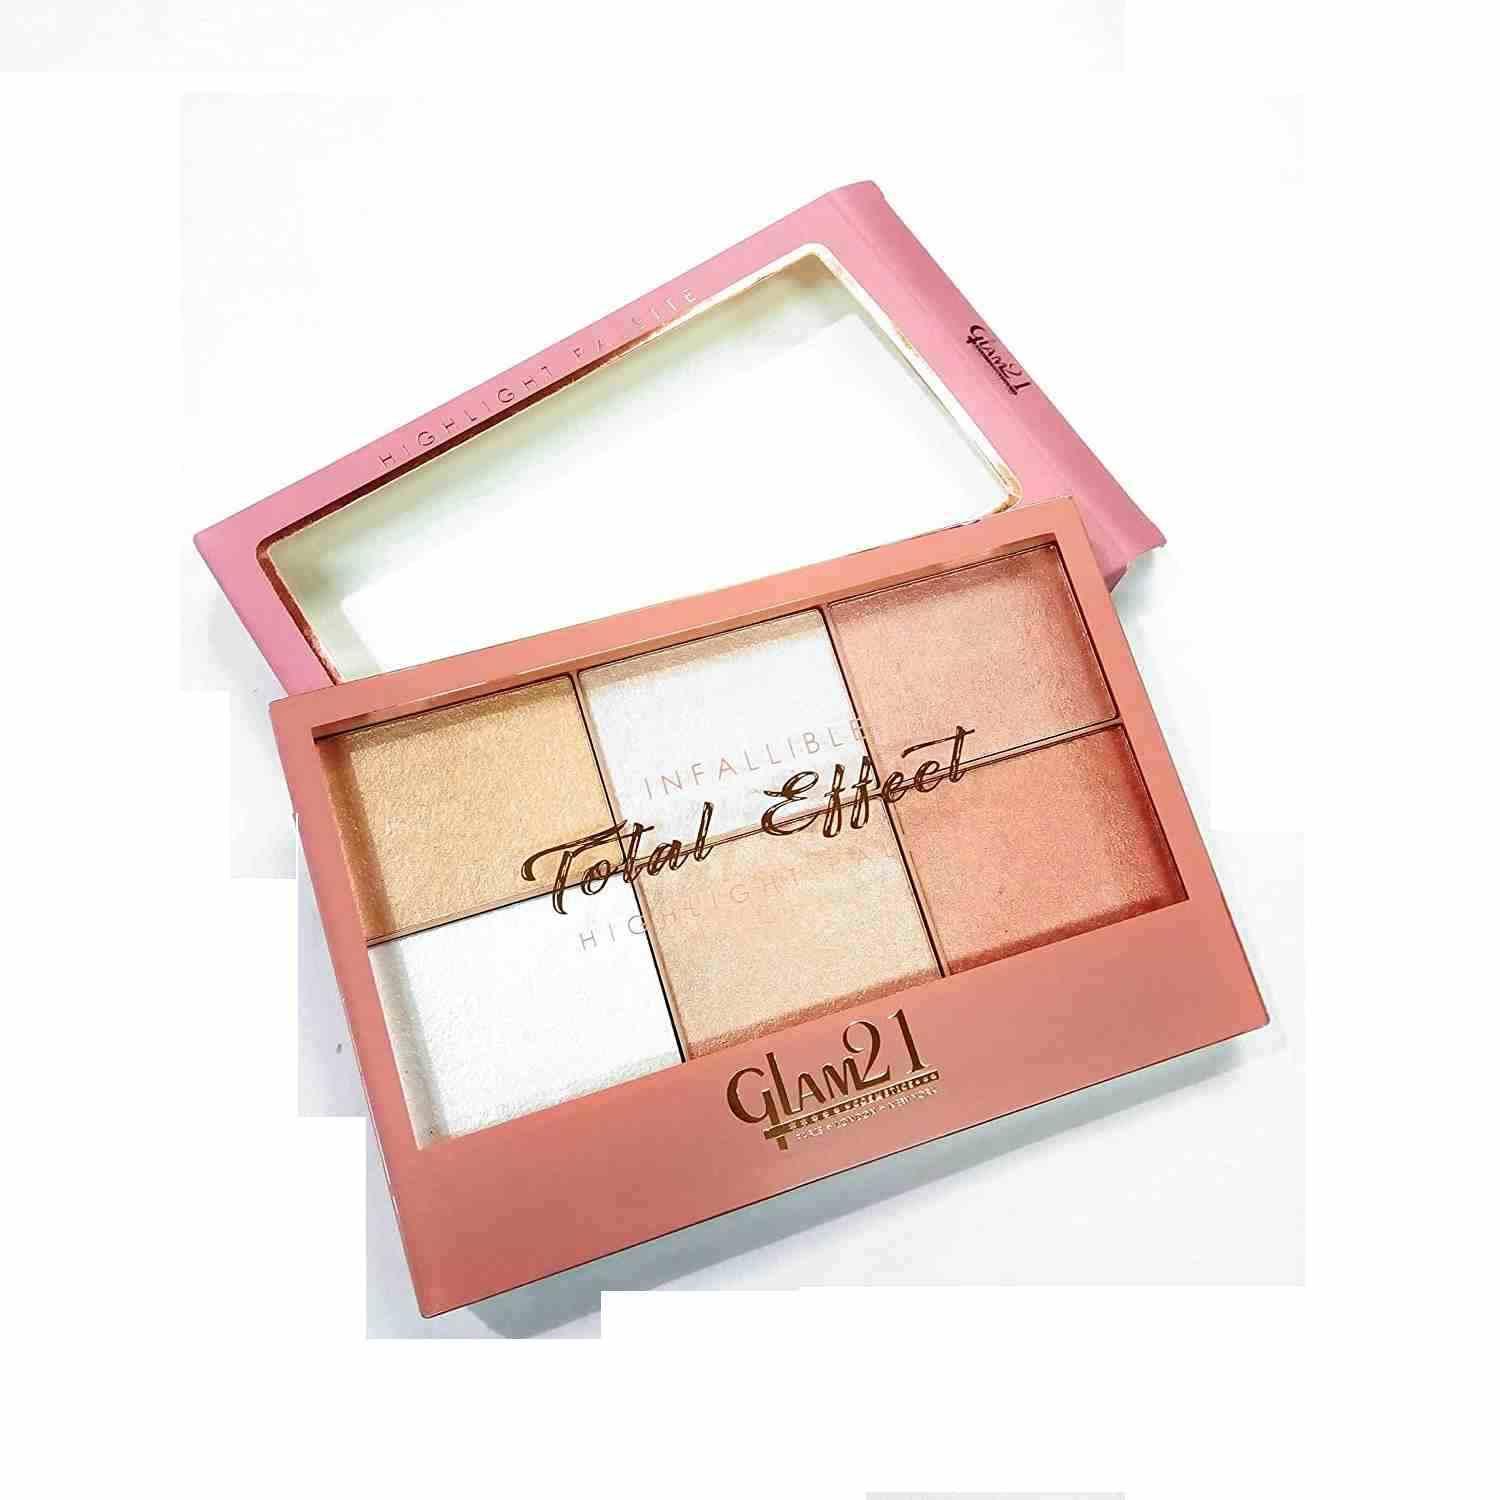 Glam 21 Total Effect Palette